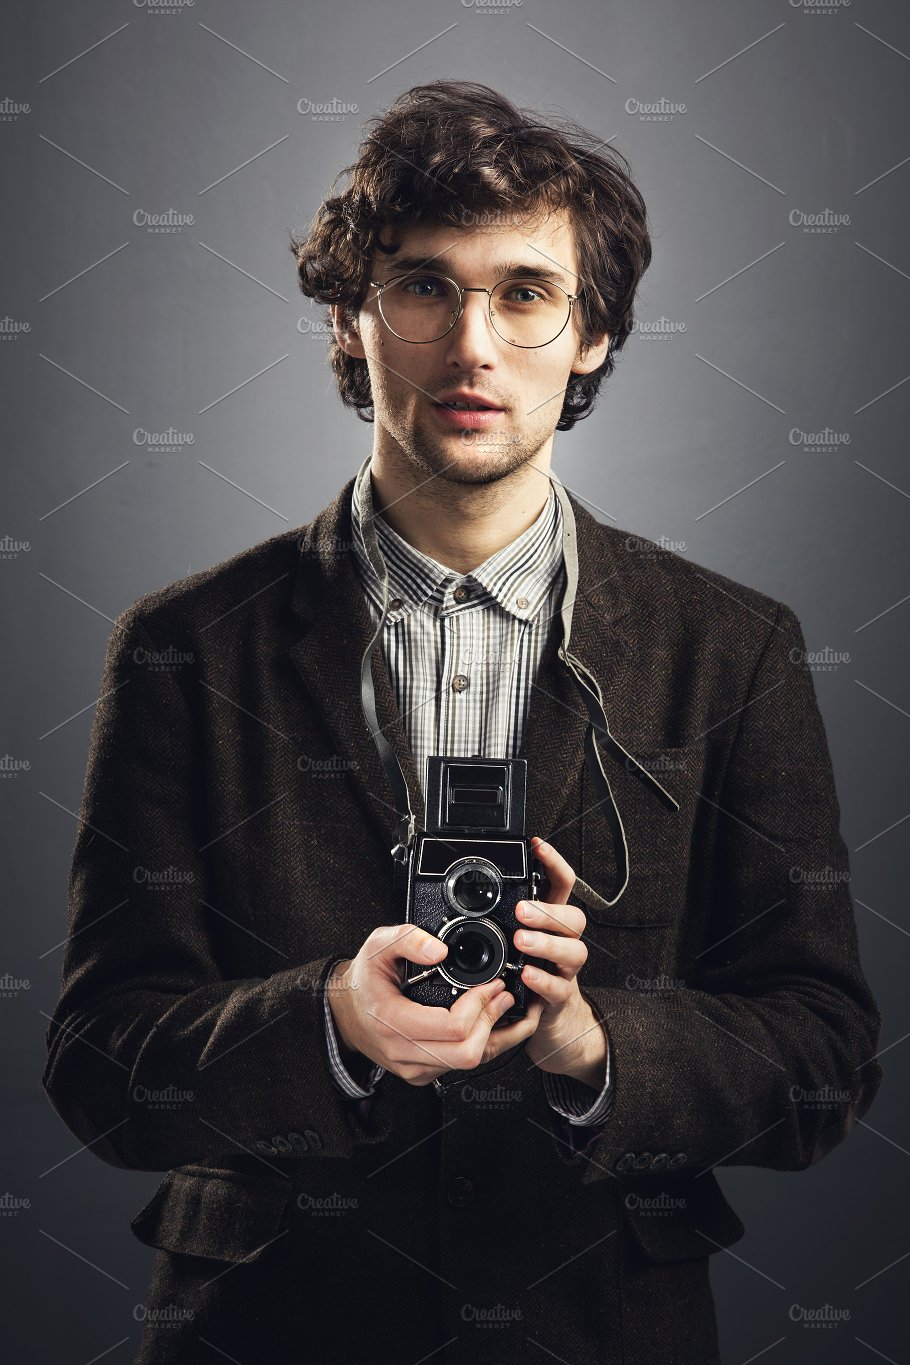 90203555d3577 Man in vintage suit with retro camer ~ People Images ~ Creative Market